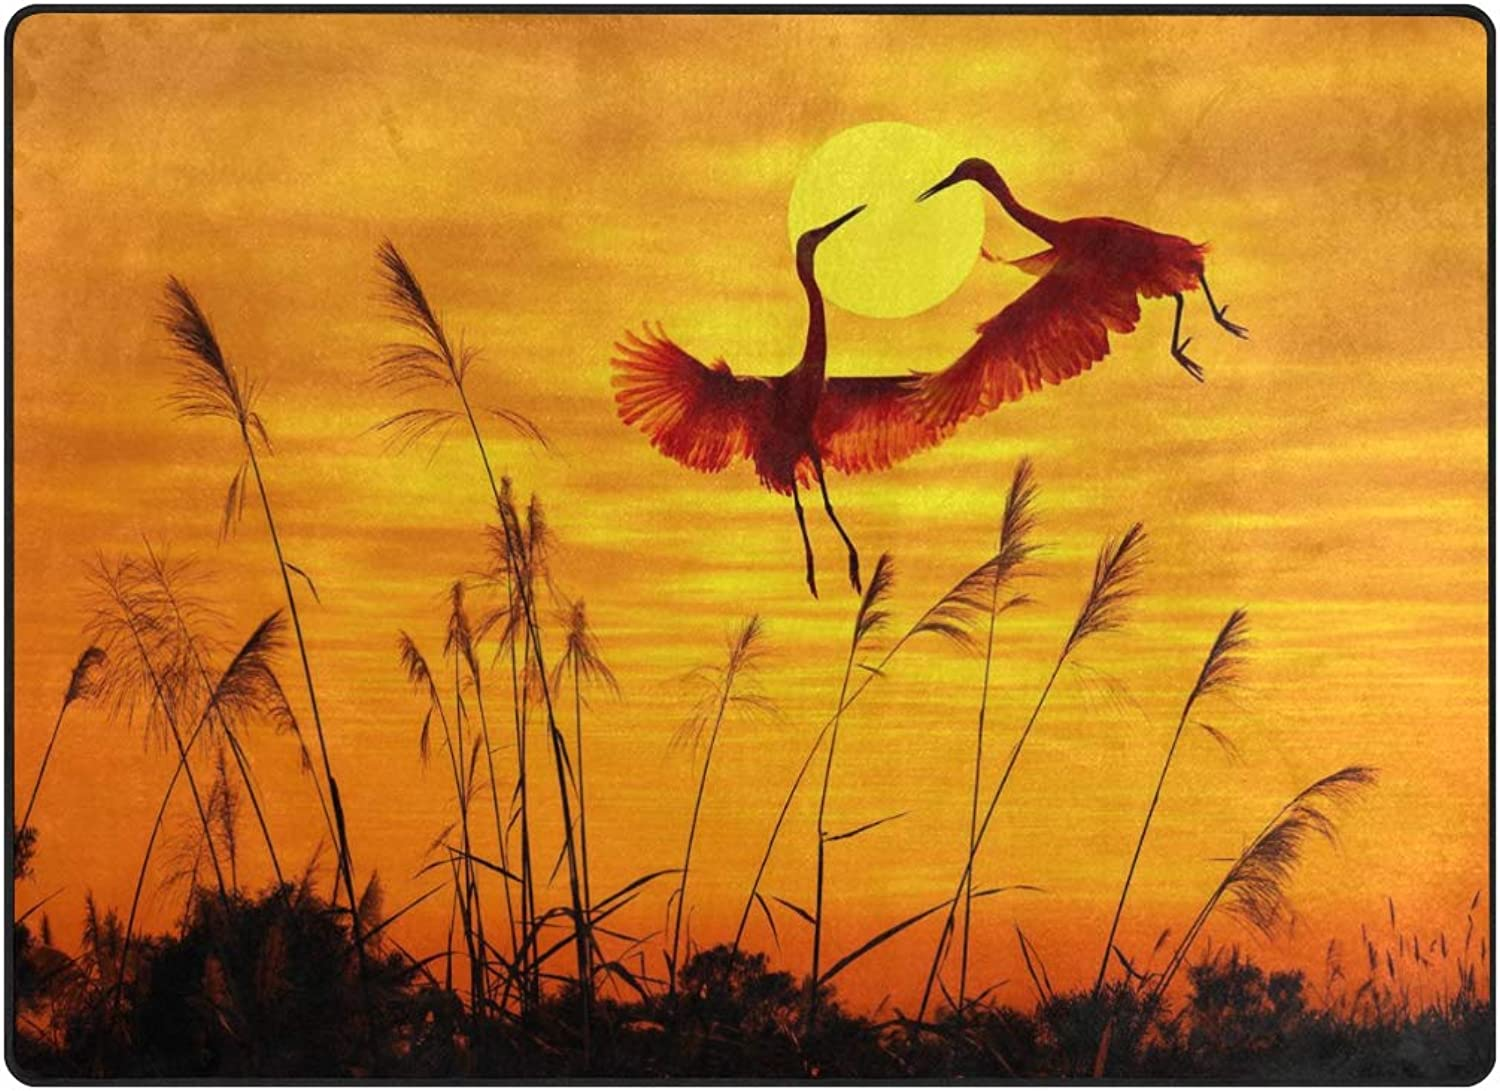 FAJRO Flying Crane Couple Sunset Pattern Rugs for entryway Doormat Area Rug Multipattern Door Mat shoes Scraper Home Dec Anti-Slip Indoor Outdoor